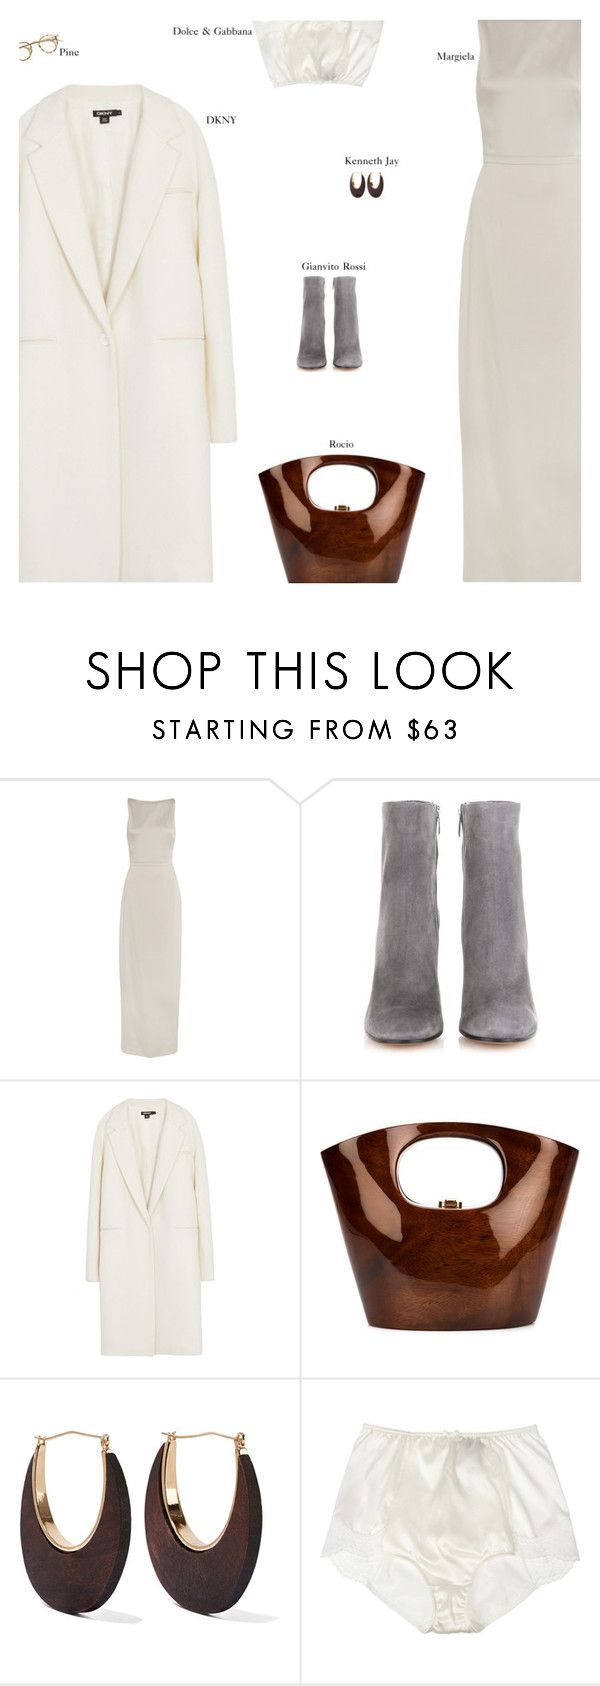 """Untitled #2538"" by amberelb ❤ liked on Polyvore featuring Maison Margiela, Gianvito Rossi, DKNY, Rocio, Kenneth Jay Lane and Dolce&Gabbana"